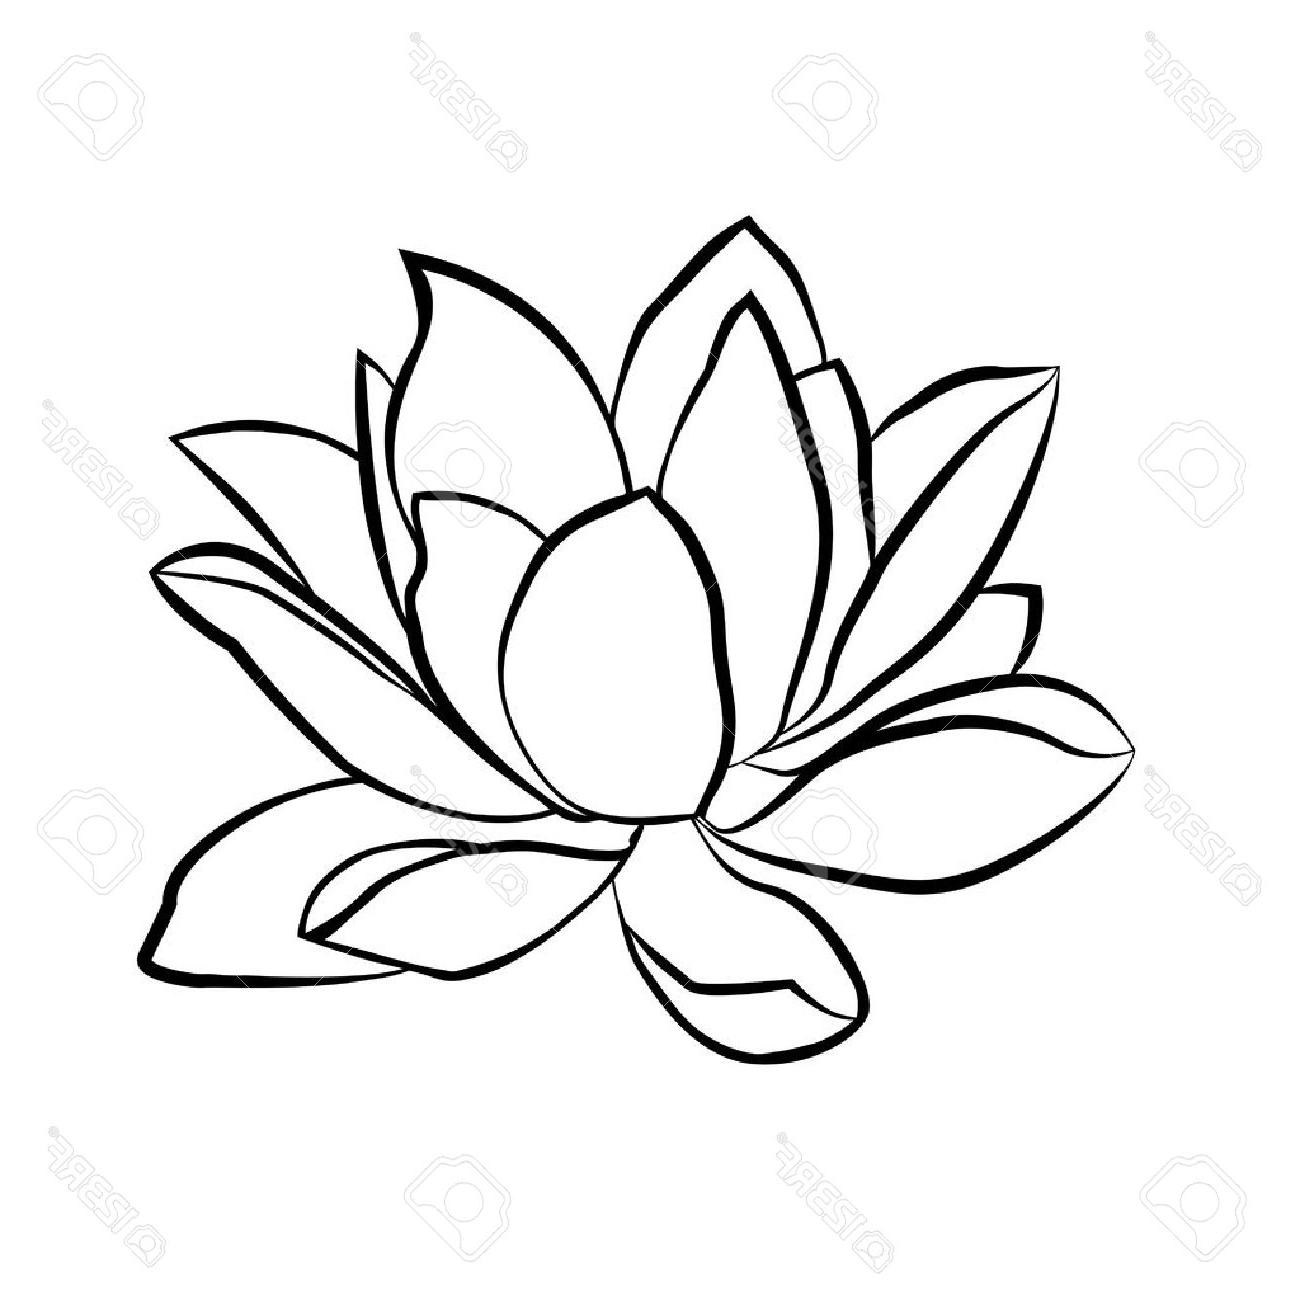 Lotus flower line drawing at getdrawings free for personal use 1300x1300 top lotus flowers icon the black line drawn on white background izmirmasajfo Images